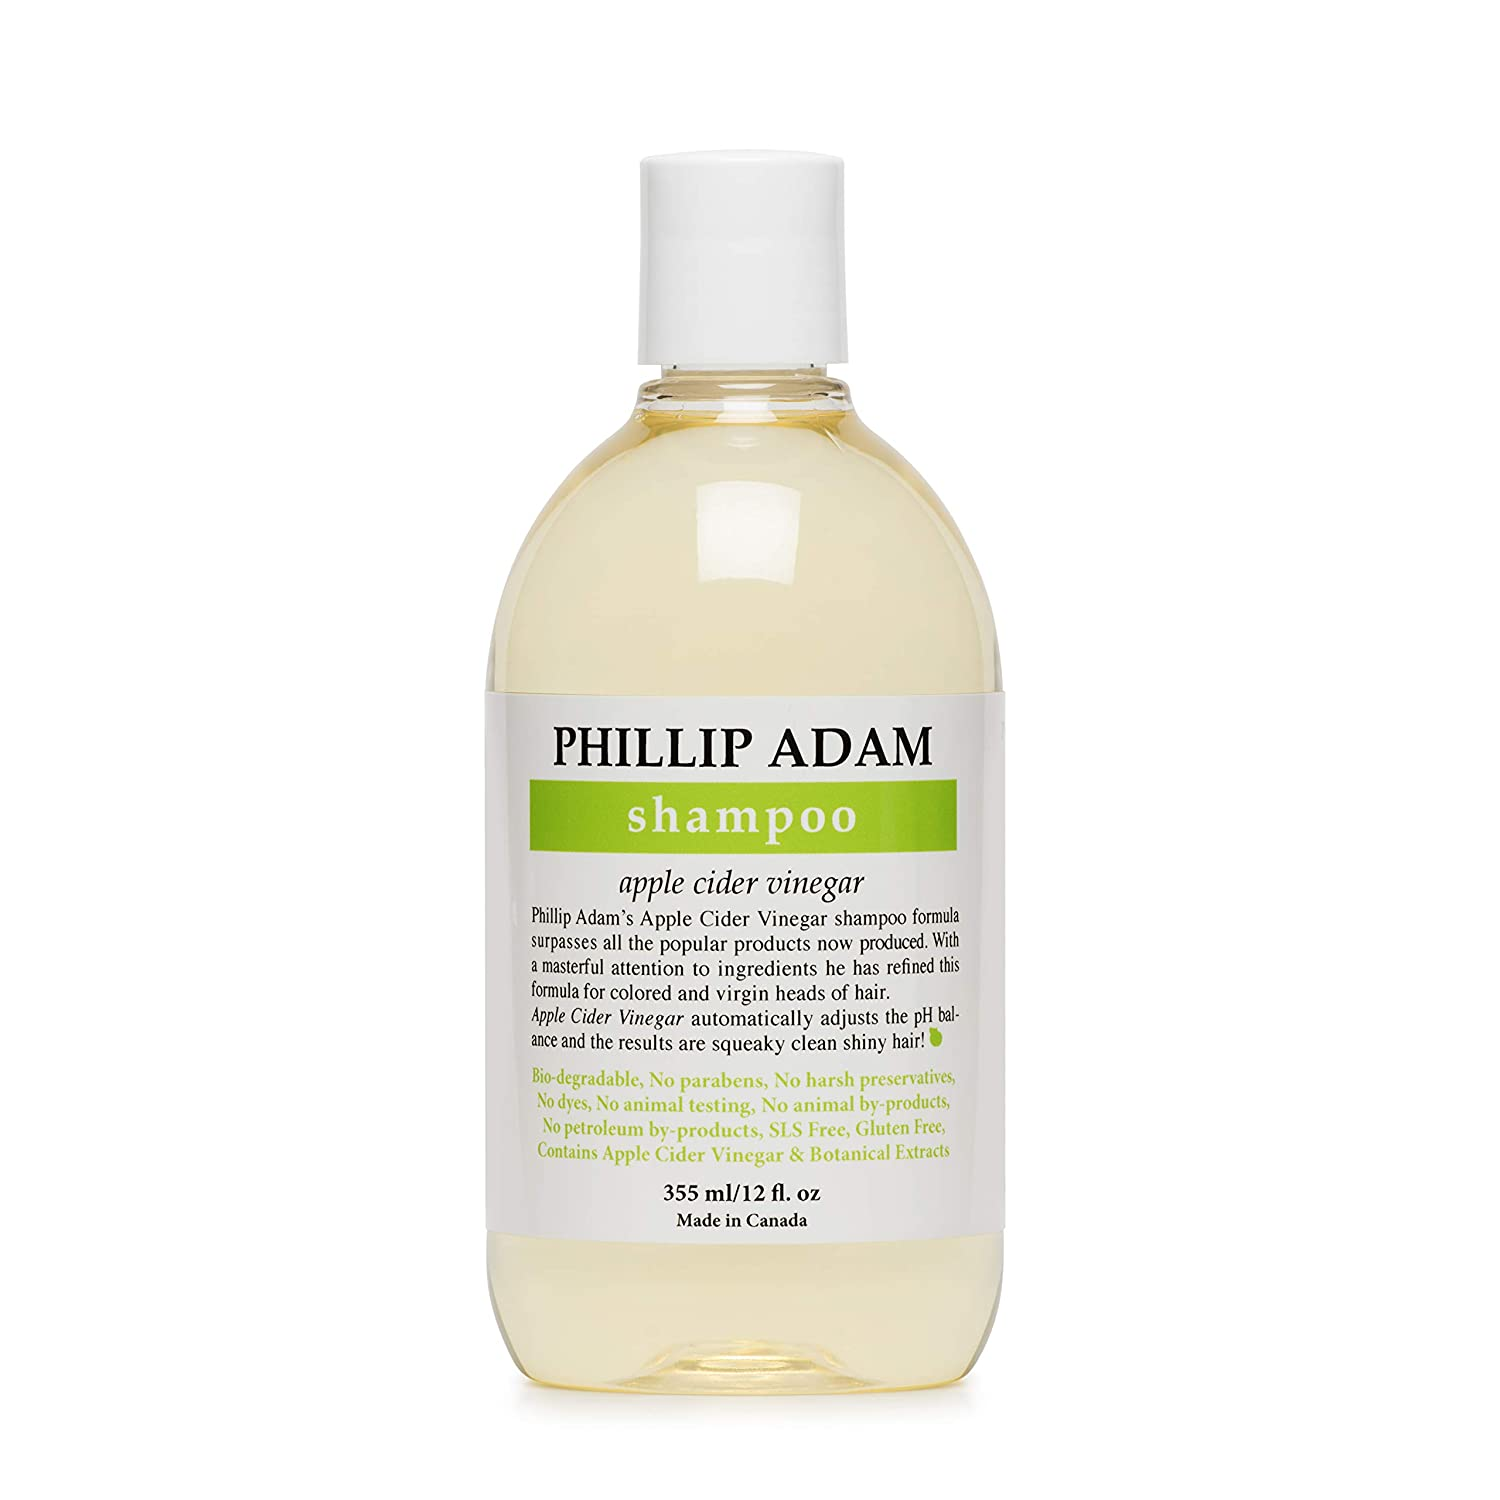 Phillip Adam Apple Cider Vinegar Shampoo for Shiny Hair - Sulfate Free and Paraben Free - Original Green Apple Scent - 12 Ounce